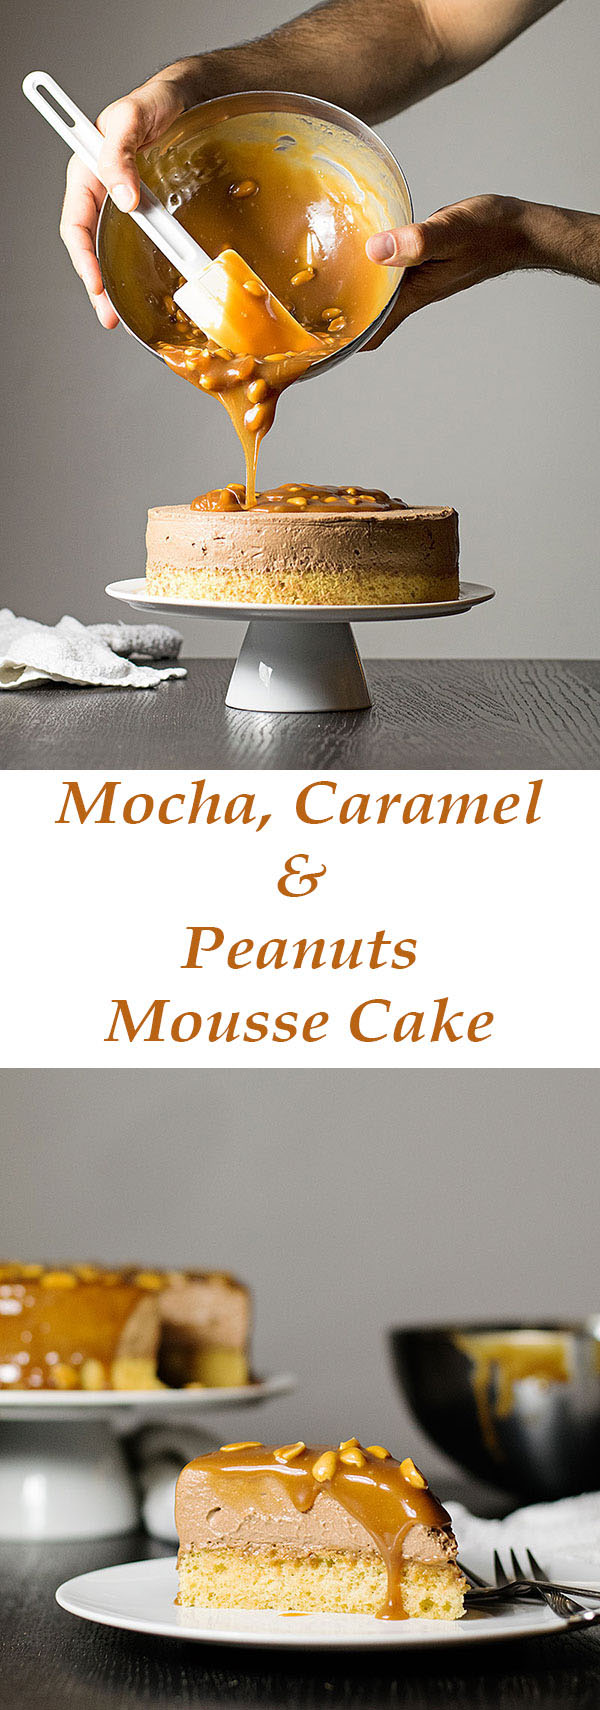 mocha-caramel-and-peanuts-mousse-cake-8